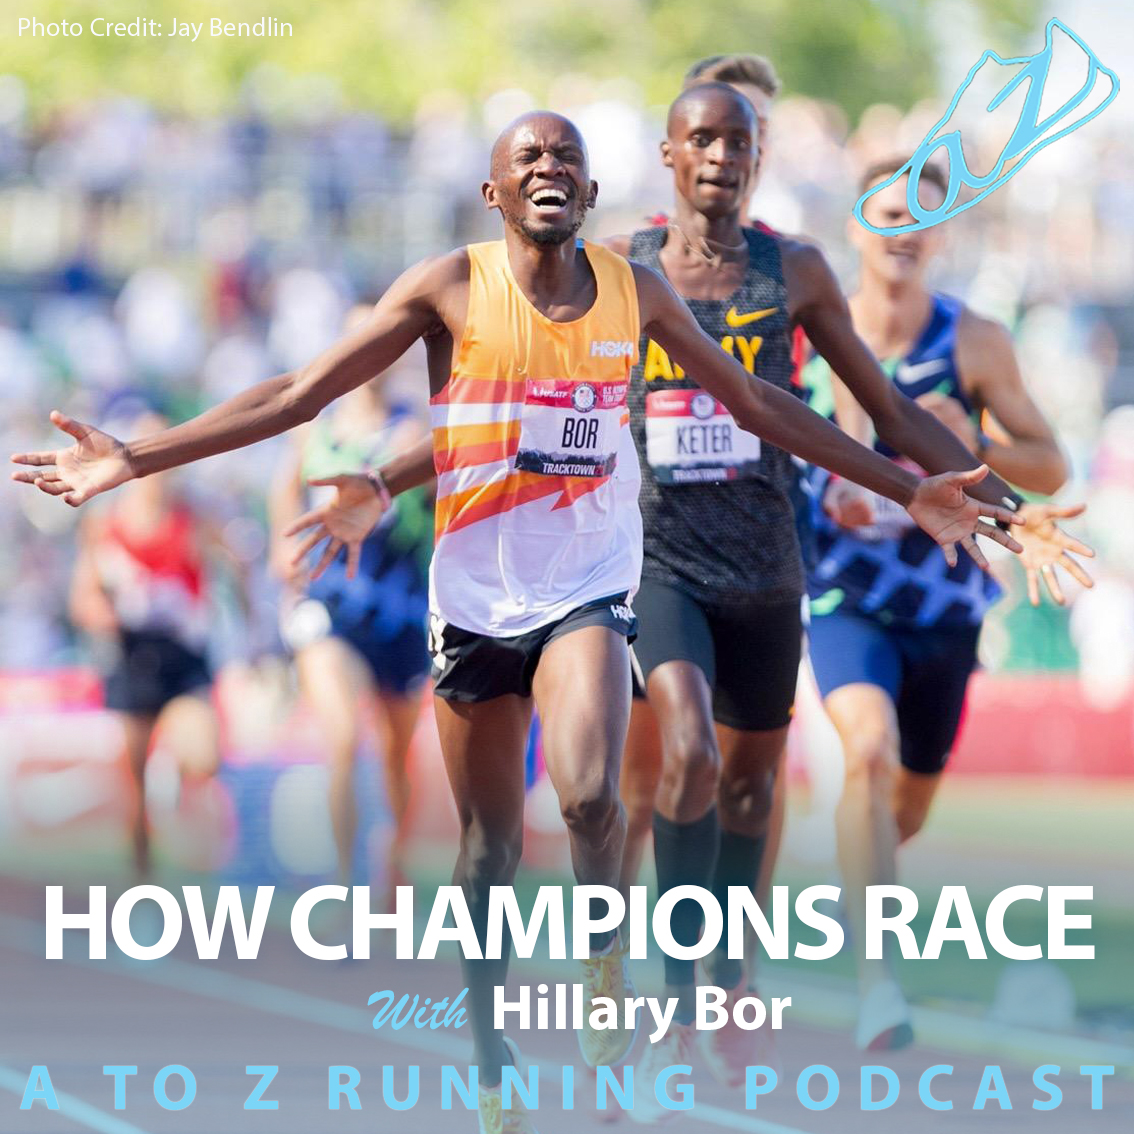 How champions race with Hillary Bor